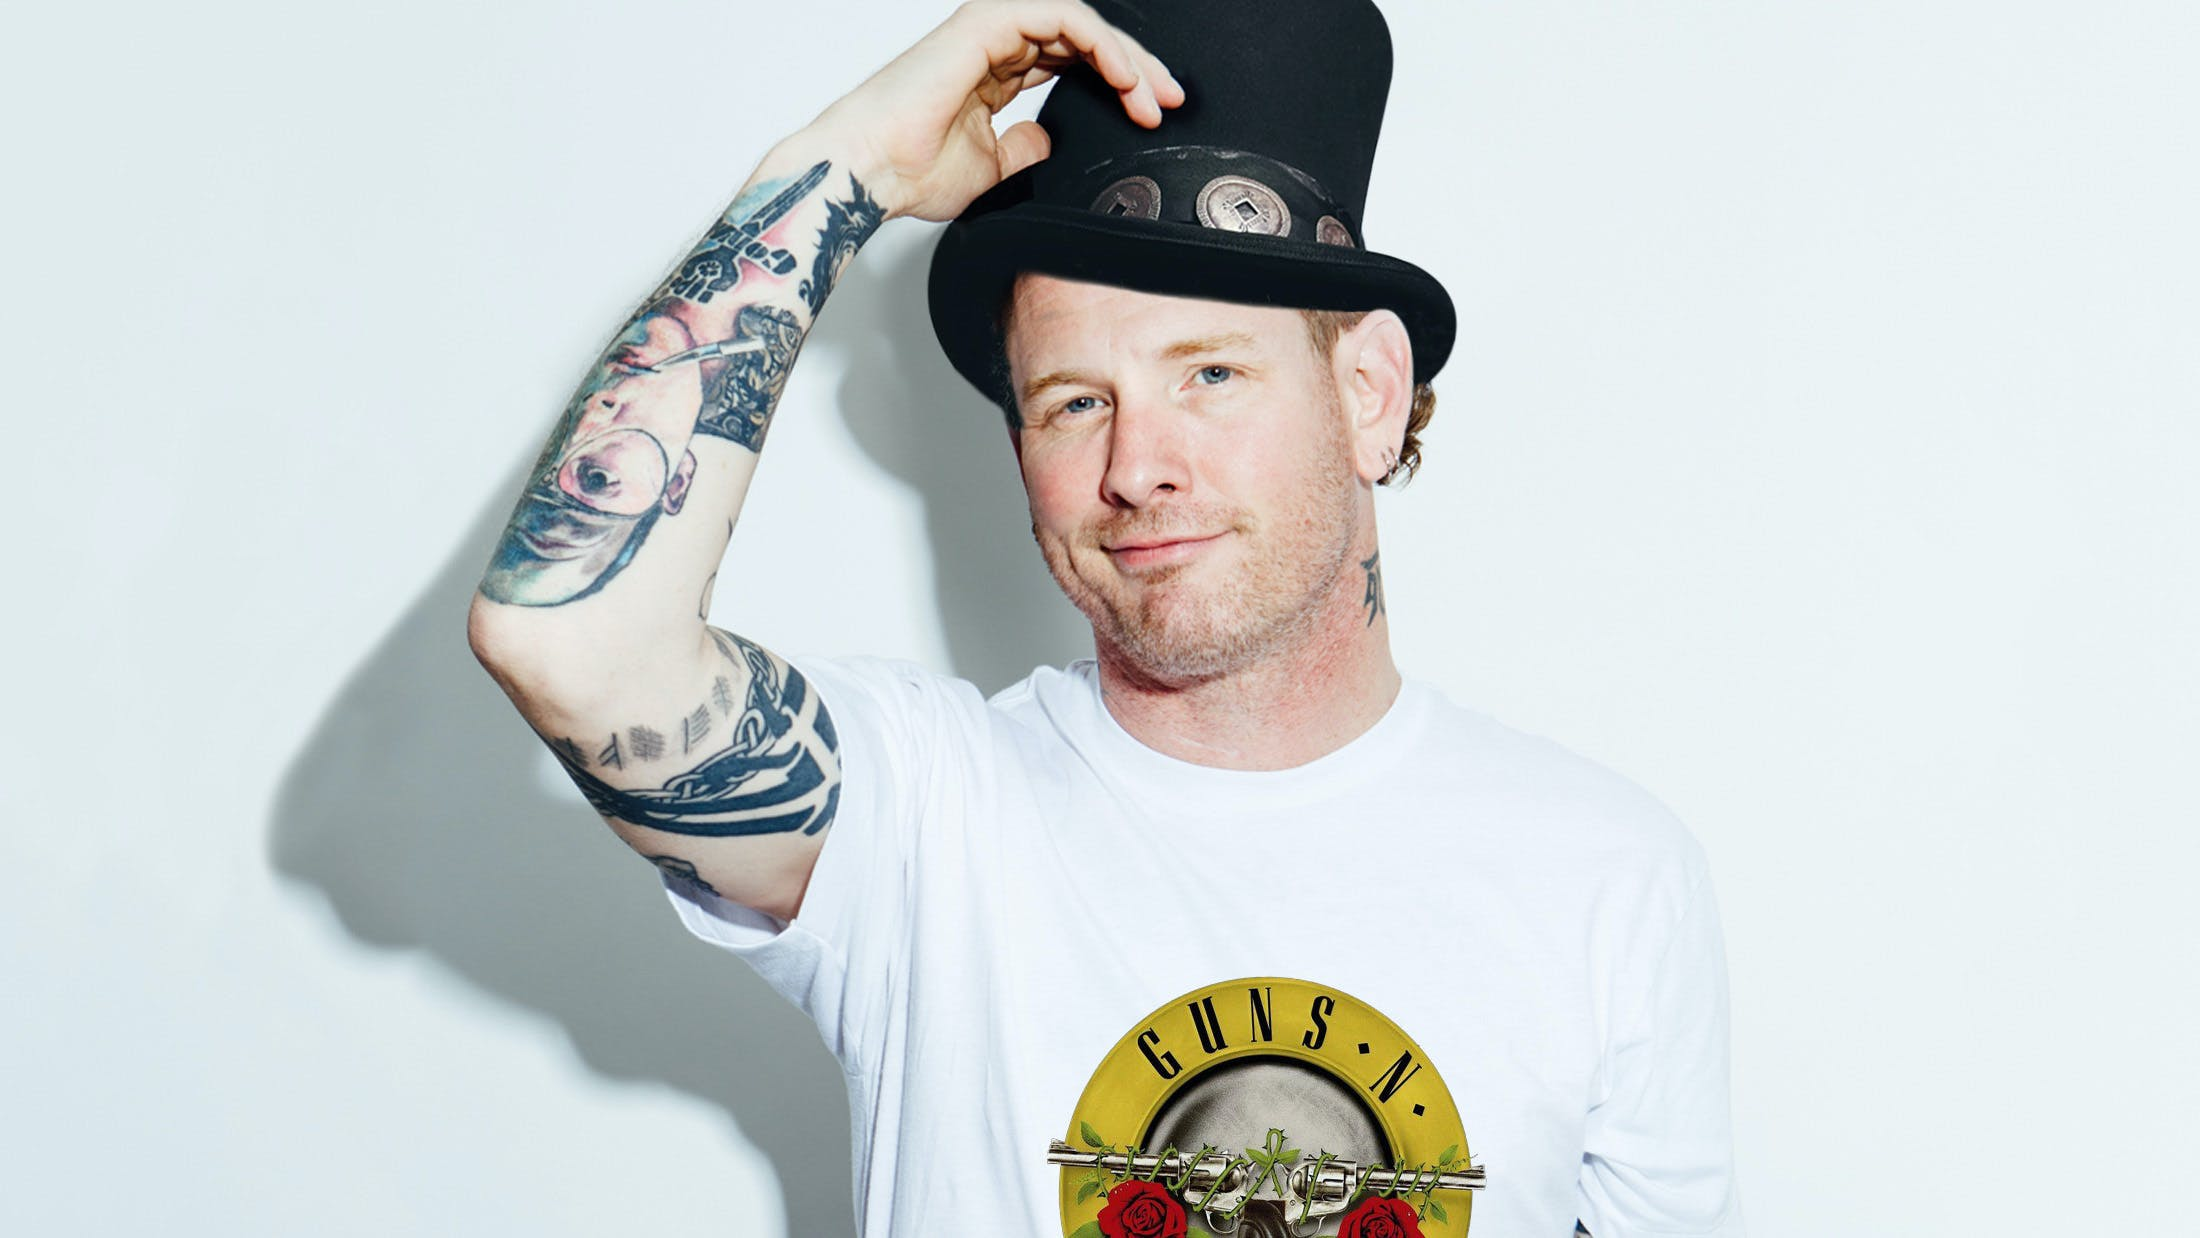 Corey Taylor in Slash's hat